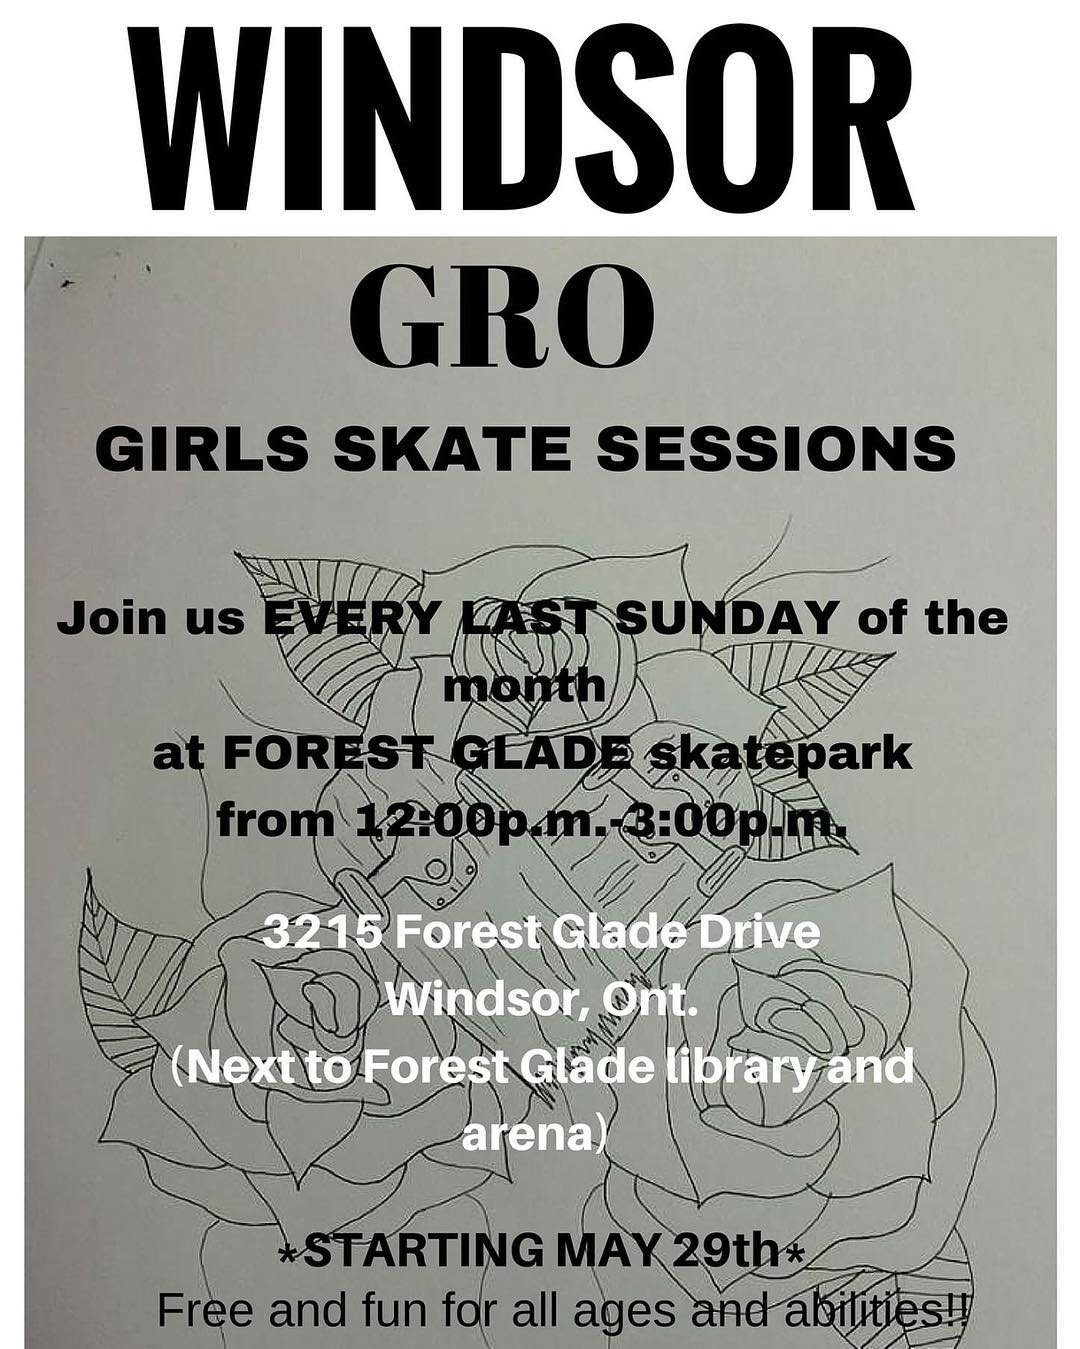 Come hang out with the ladies of the #windsorgrocrew this Sunday for a fun-filled skate session at Forrest Glade Skatepark! All ages and abilities welcome